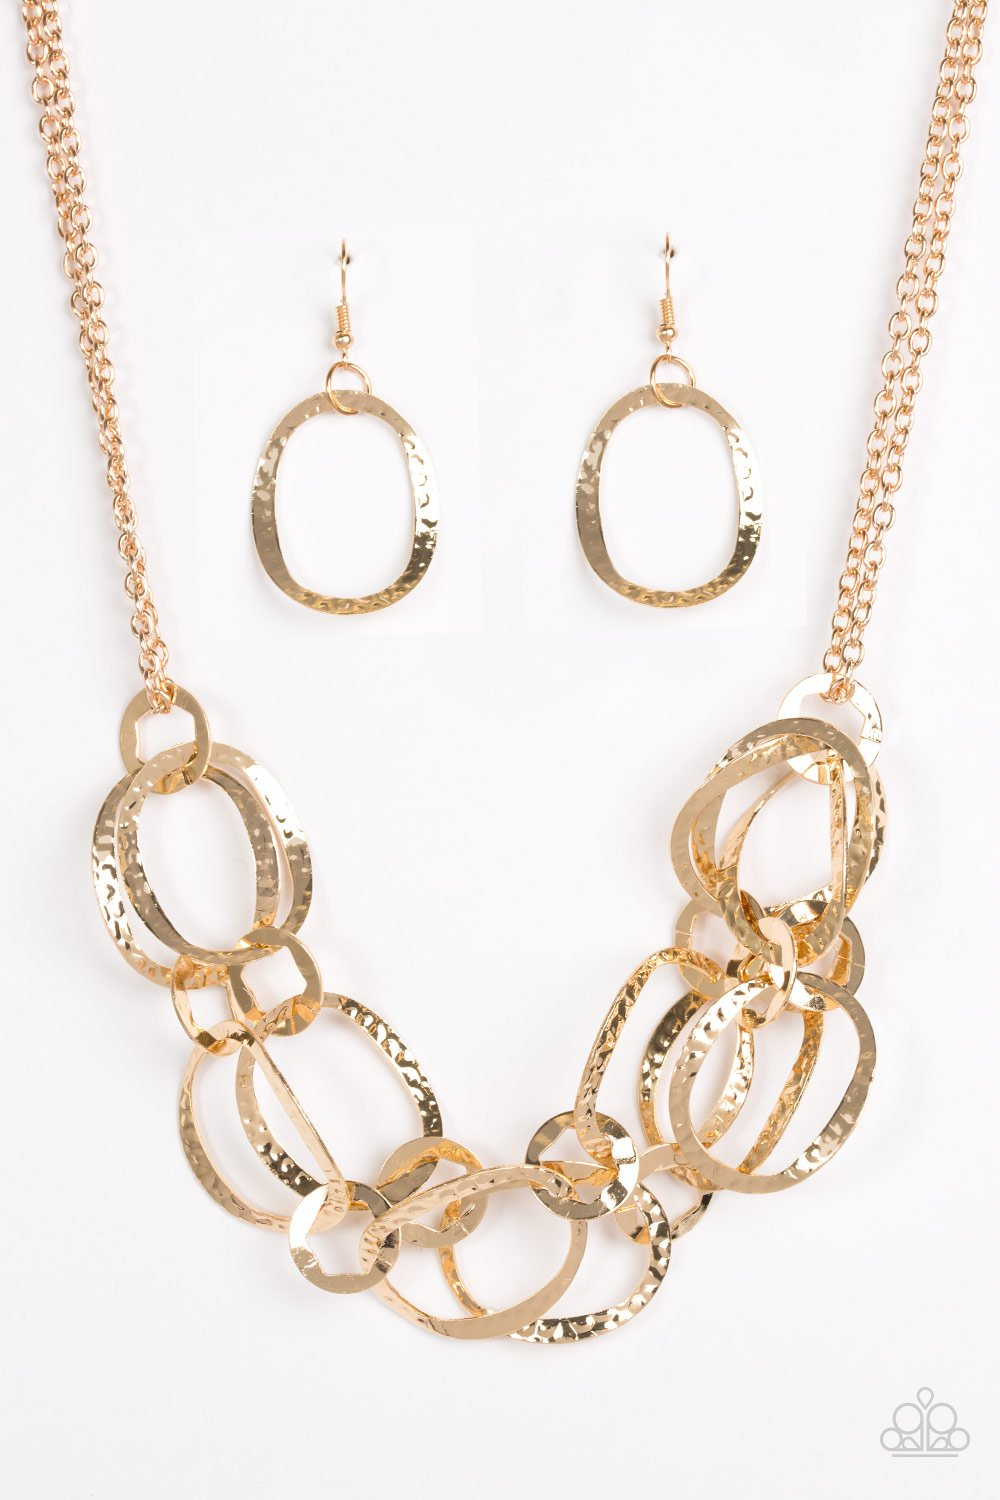 Paparazzi Accessories ~ Circus Chic - Gold